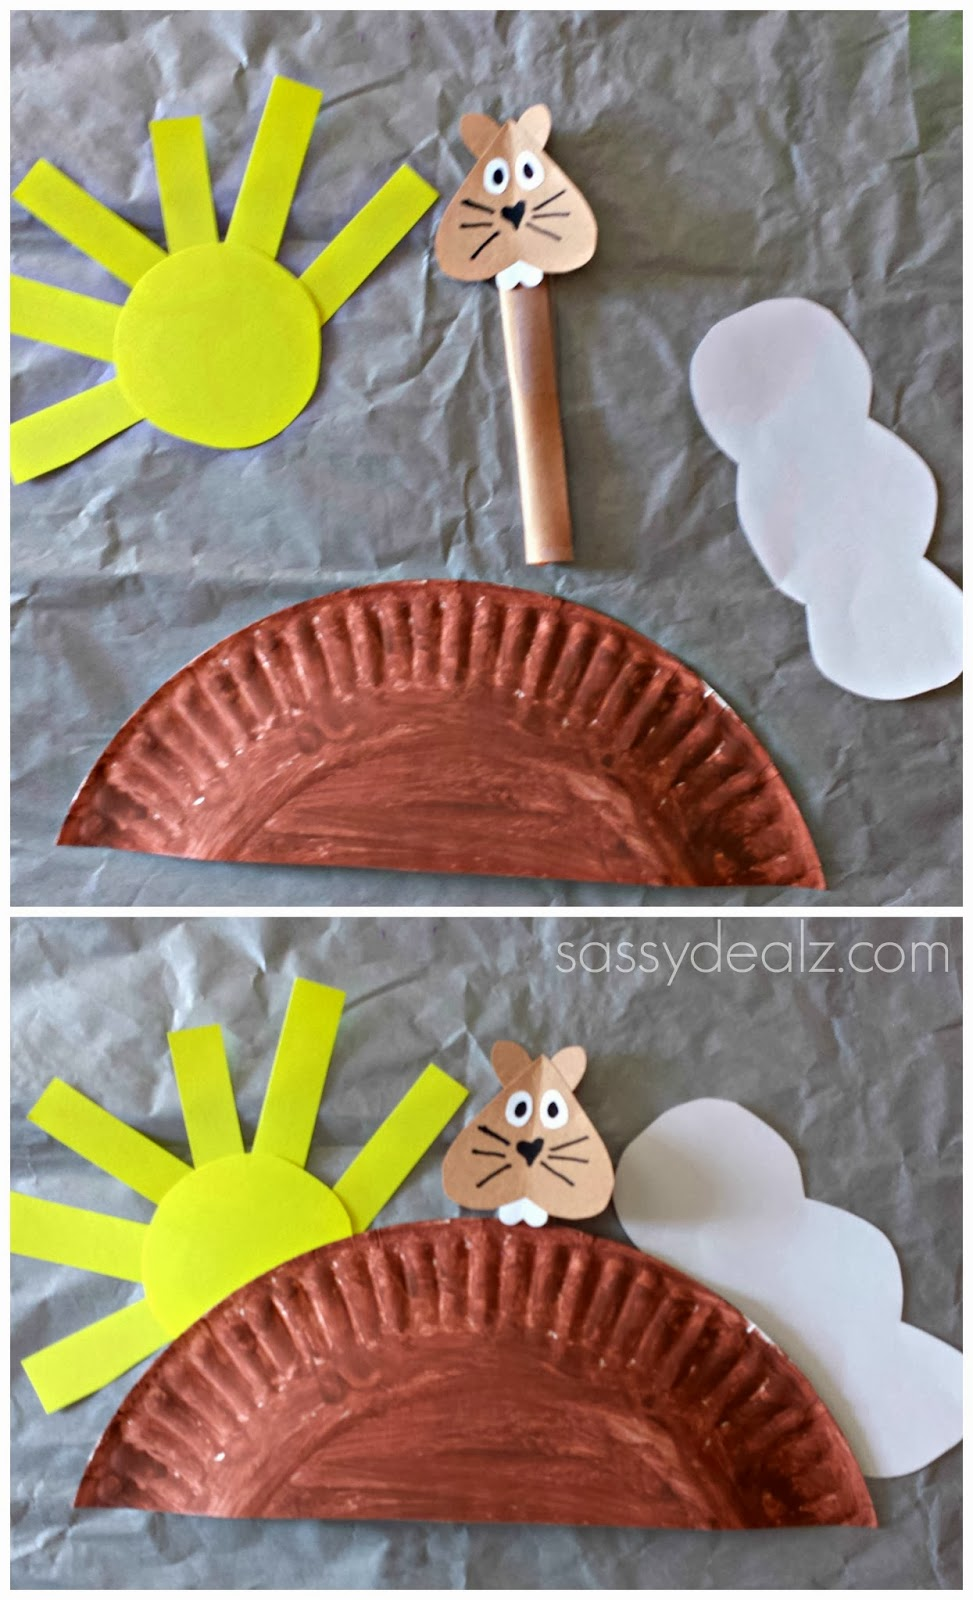 groundhog day craft for kids